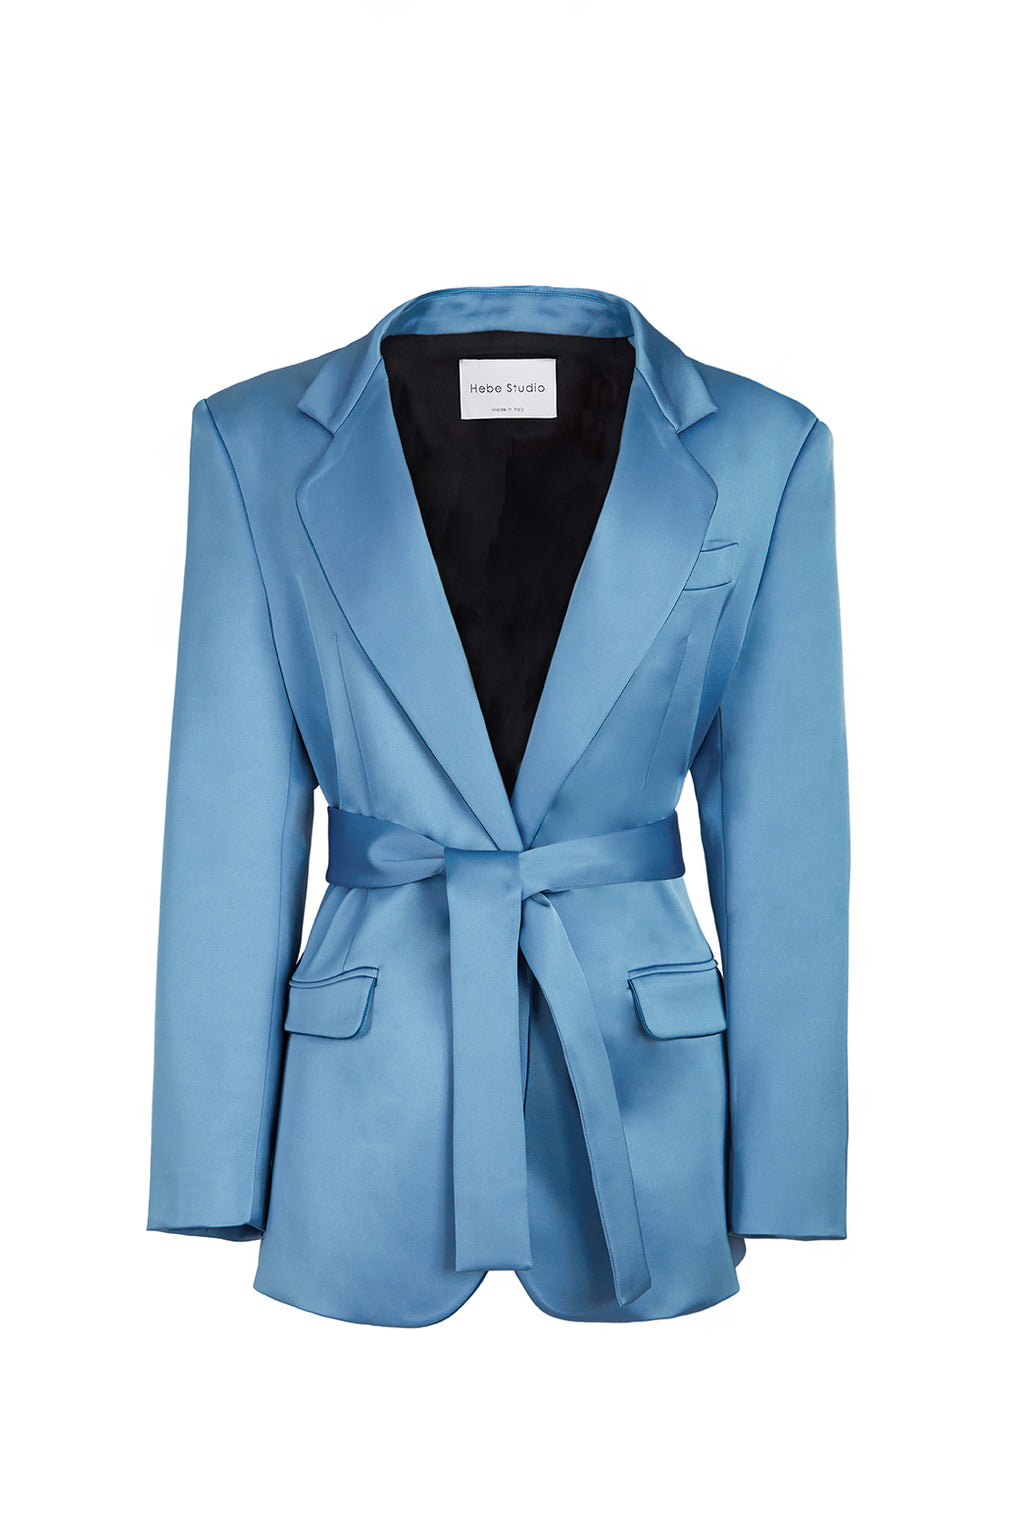 The Ciel Satin Lover Blazer with belt